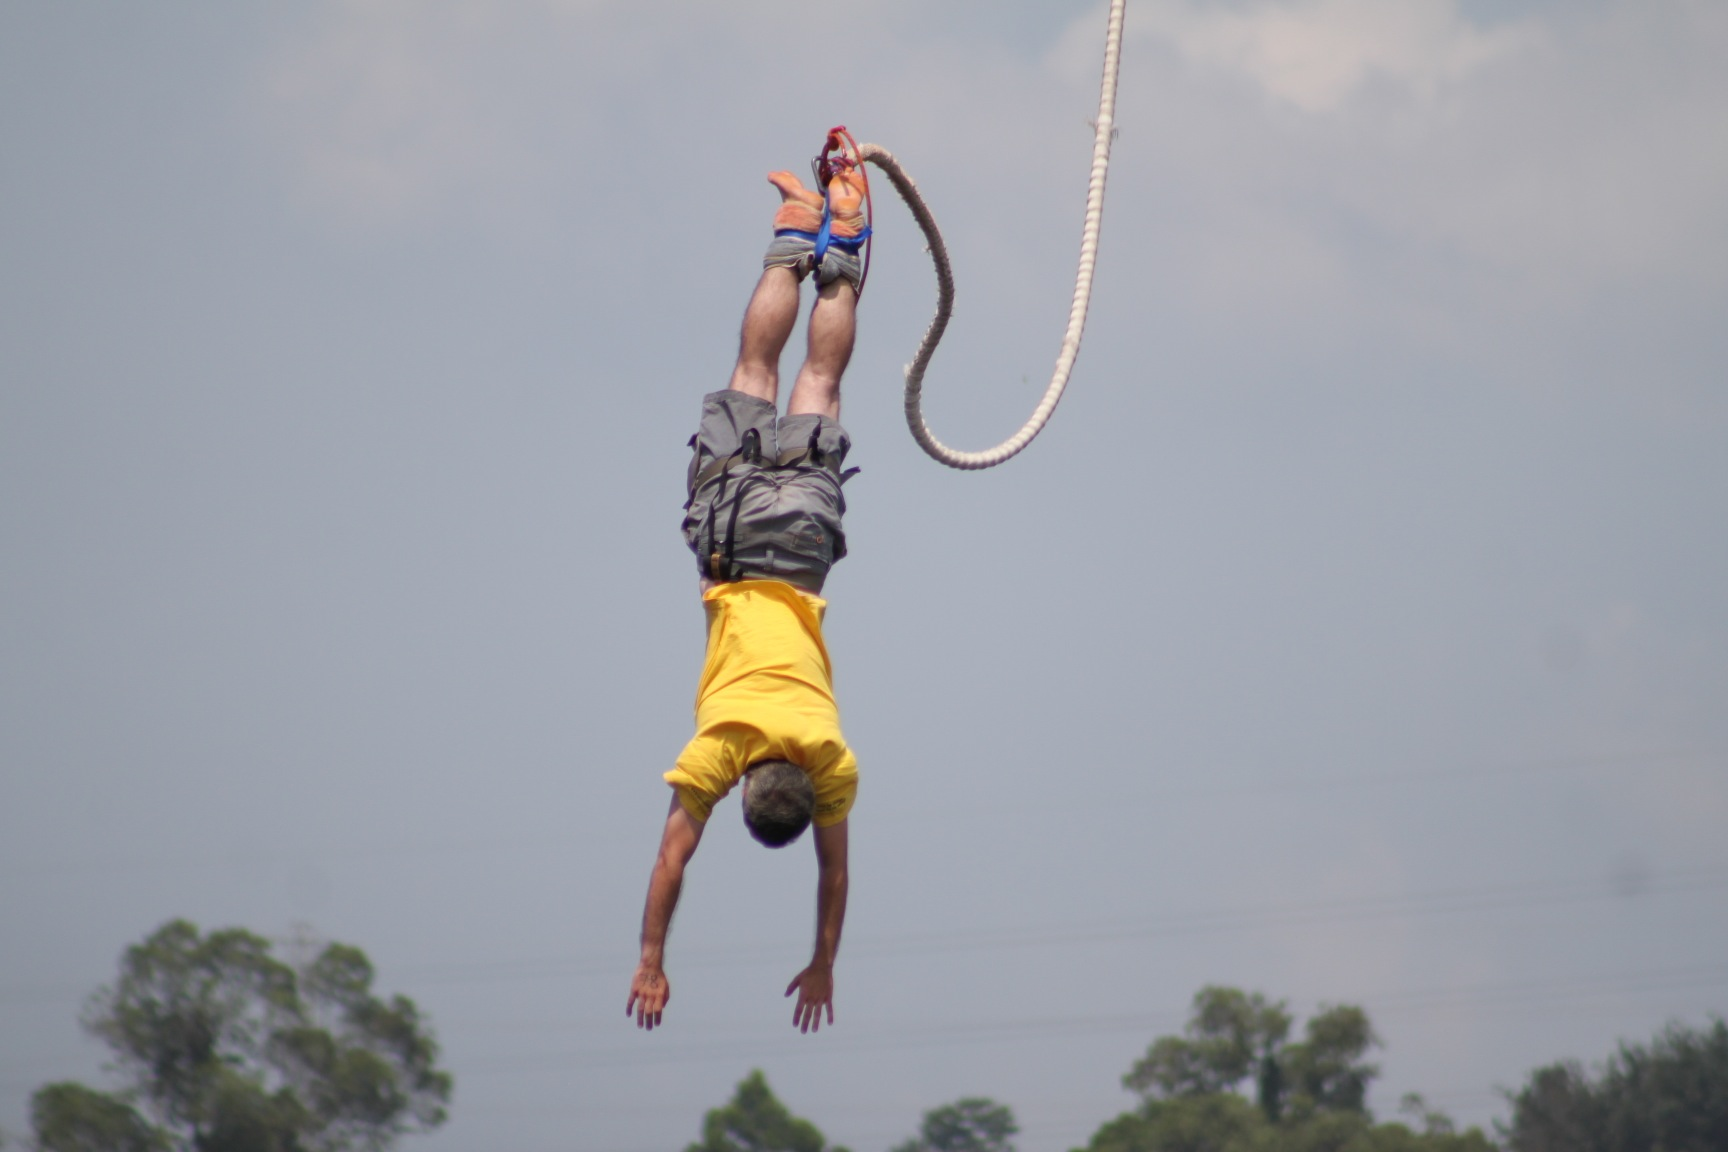 Bungee Jumping on the Nile: pic source -Cheza Breaks